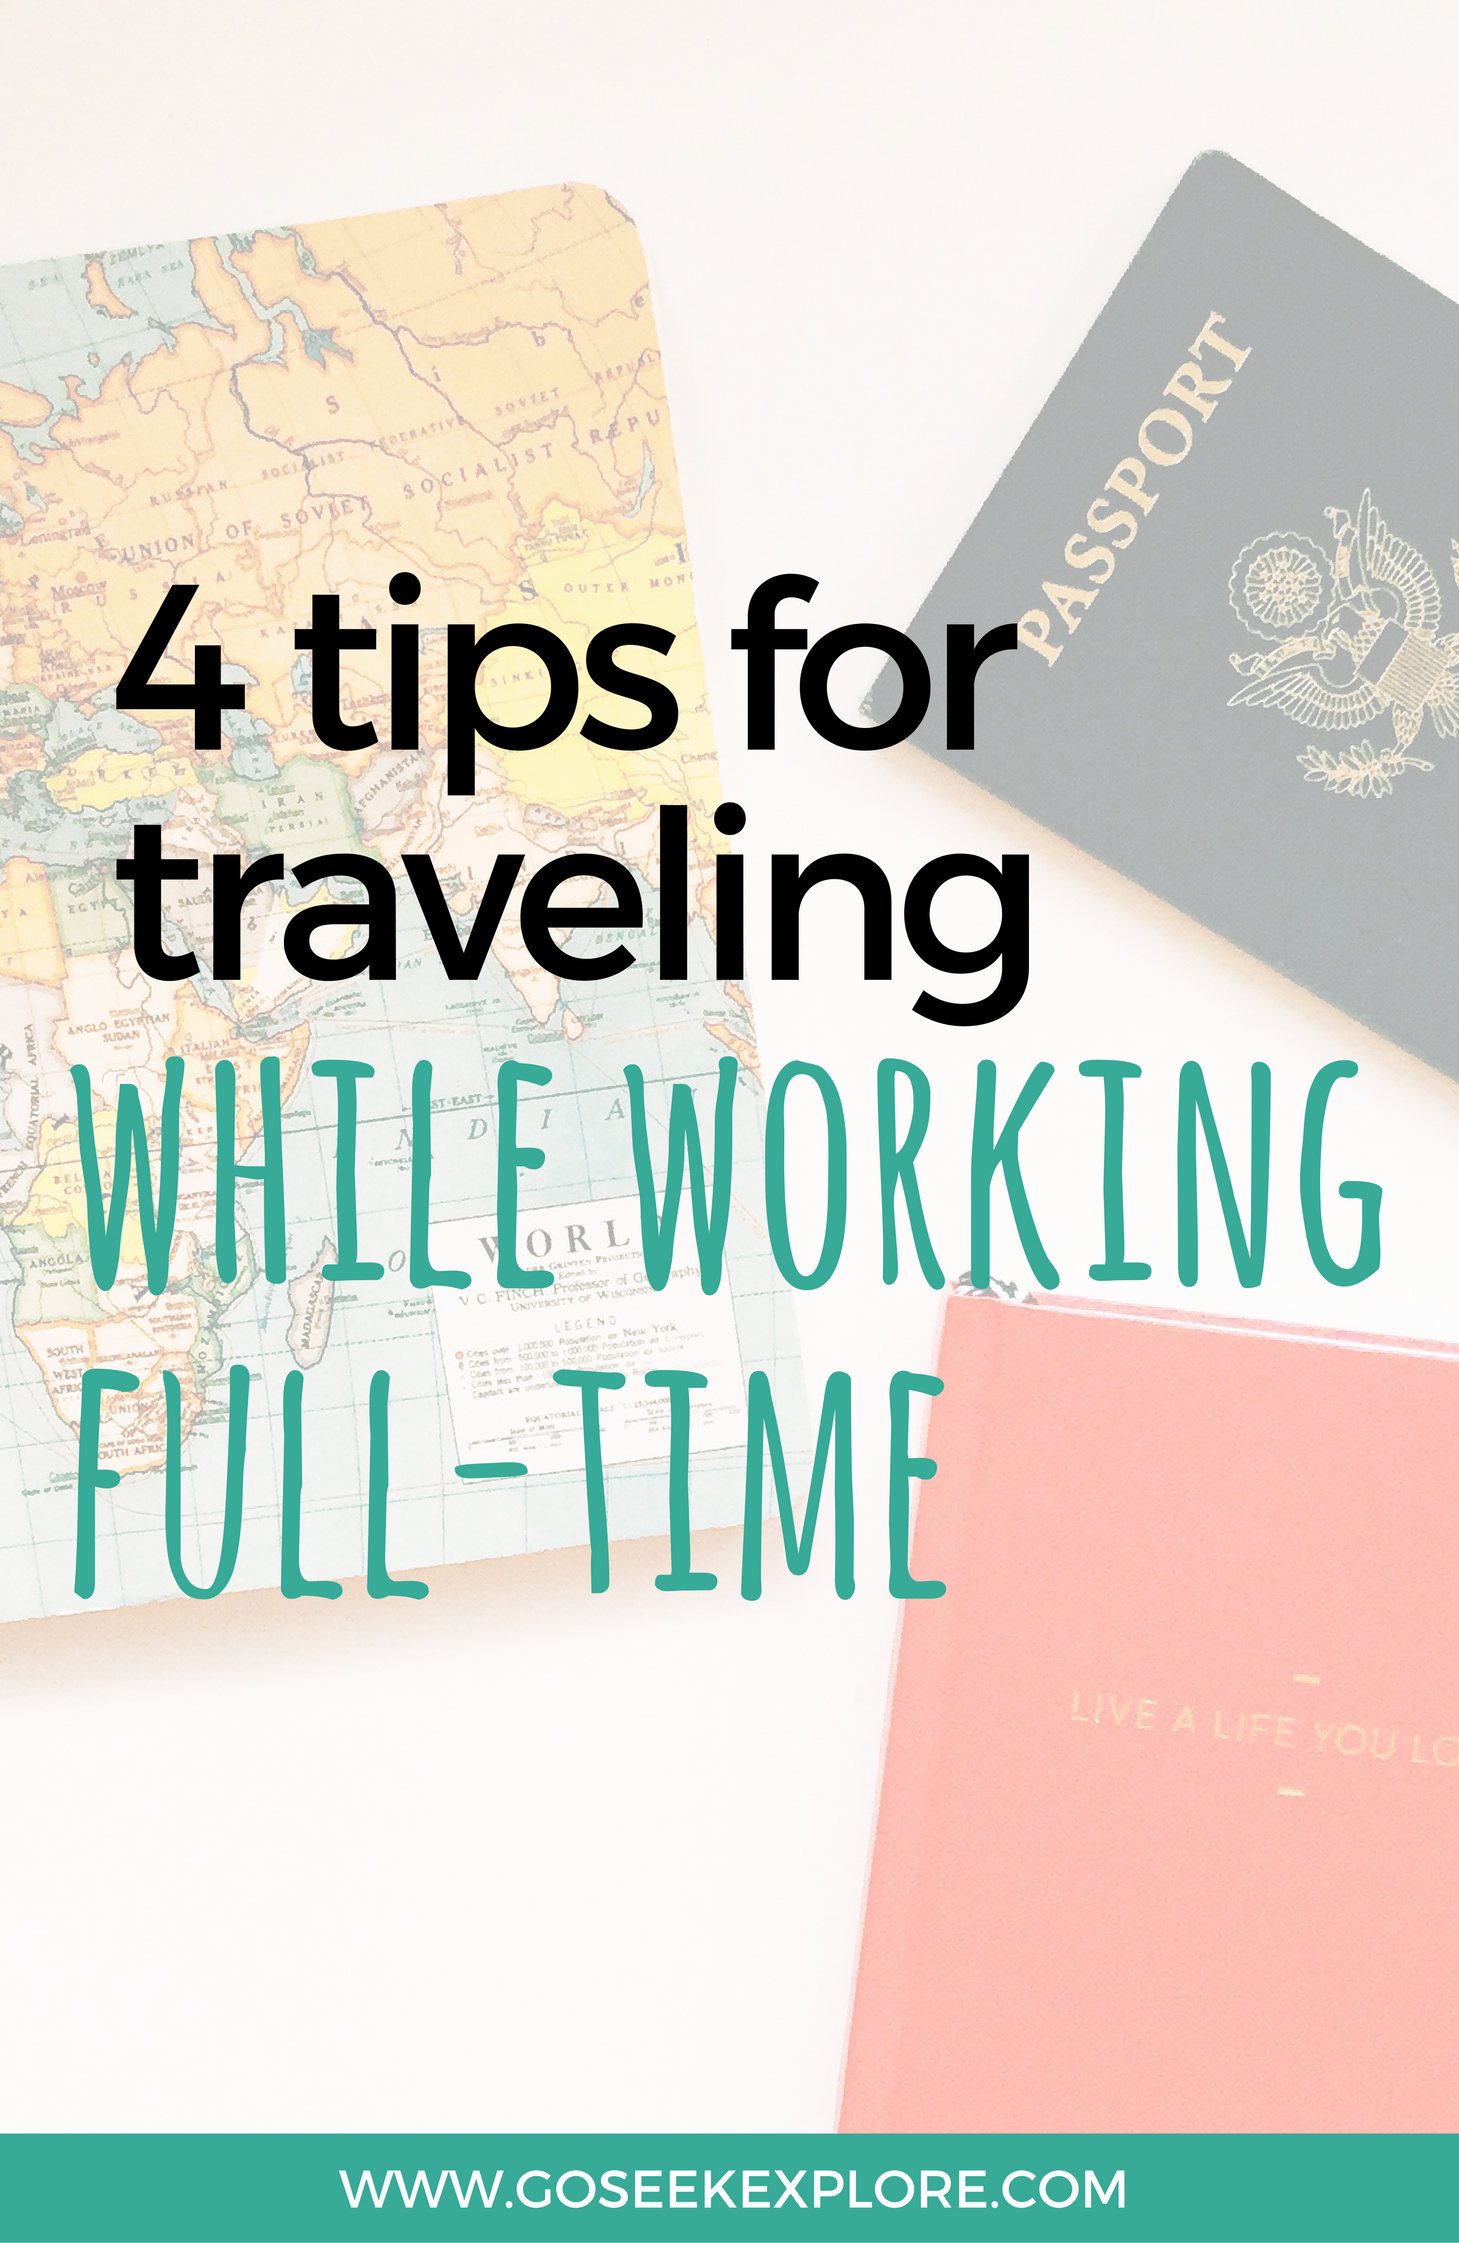 4 Tips For Traveling While Working Full-Time